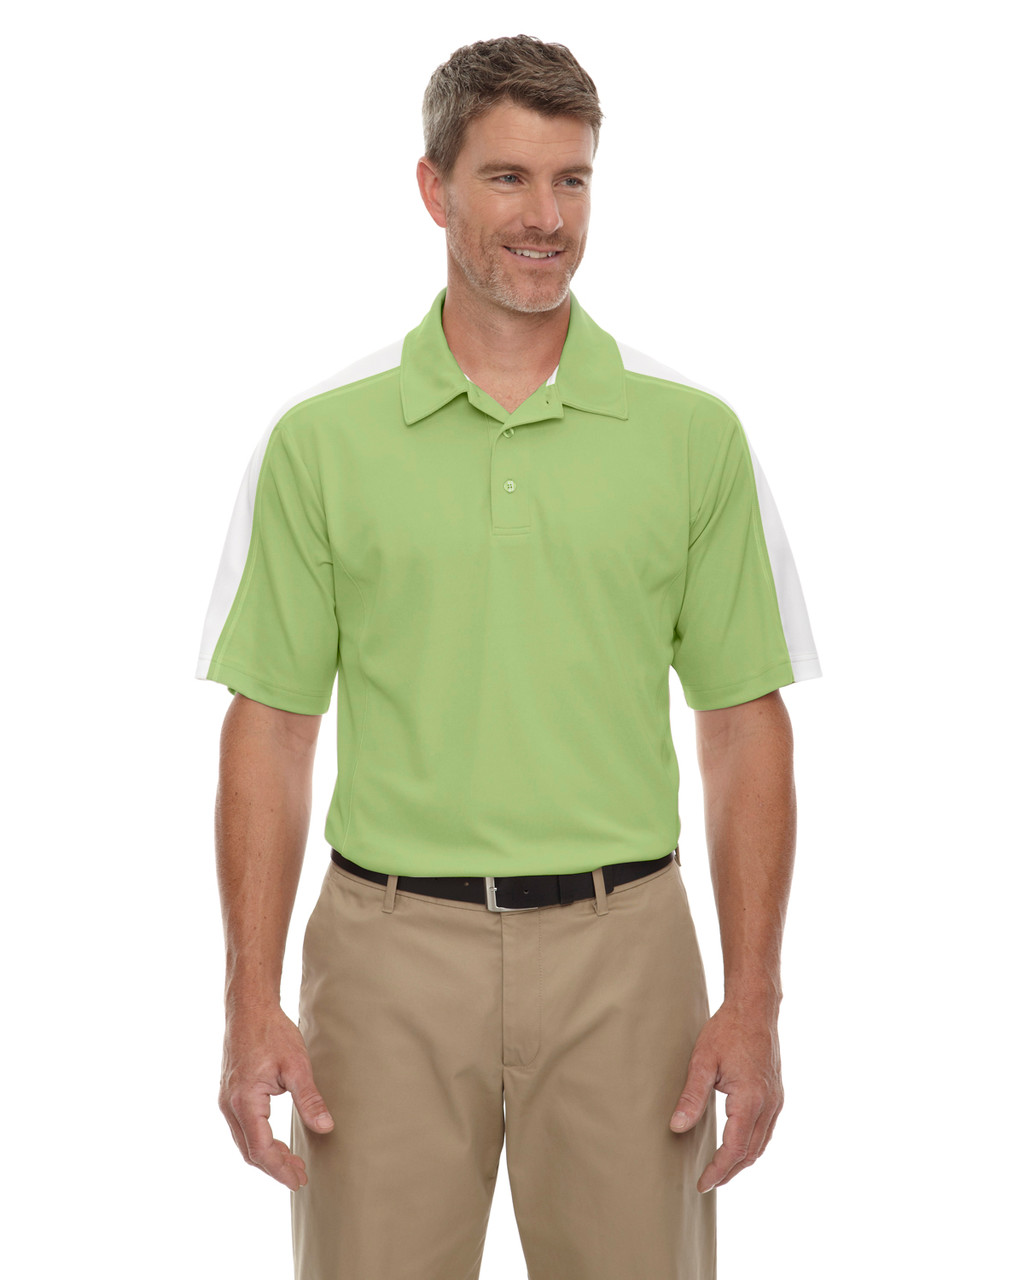 Fairway Green - 85089 Extreme Men's Eperformance Pique Color-Block Polo Shirt | BlankClothing.ca